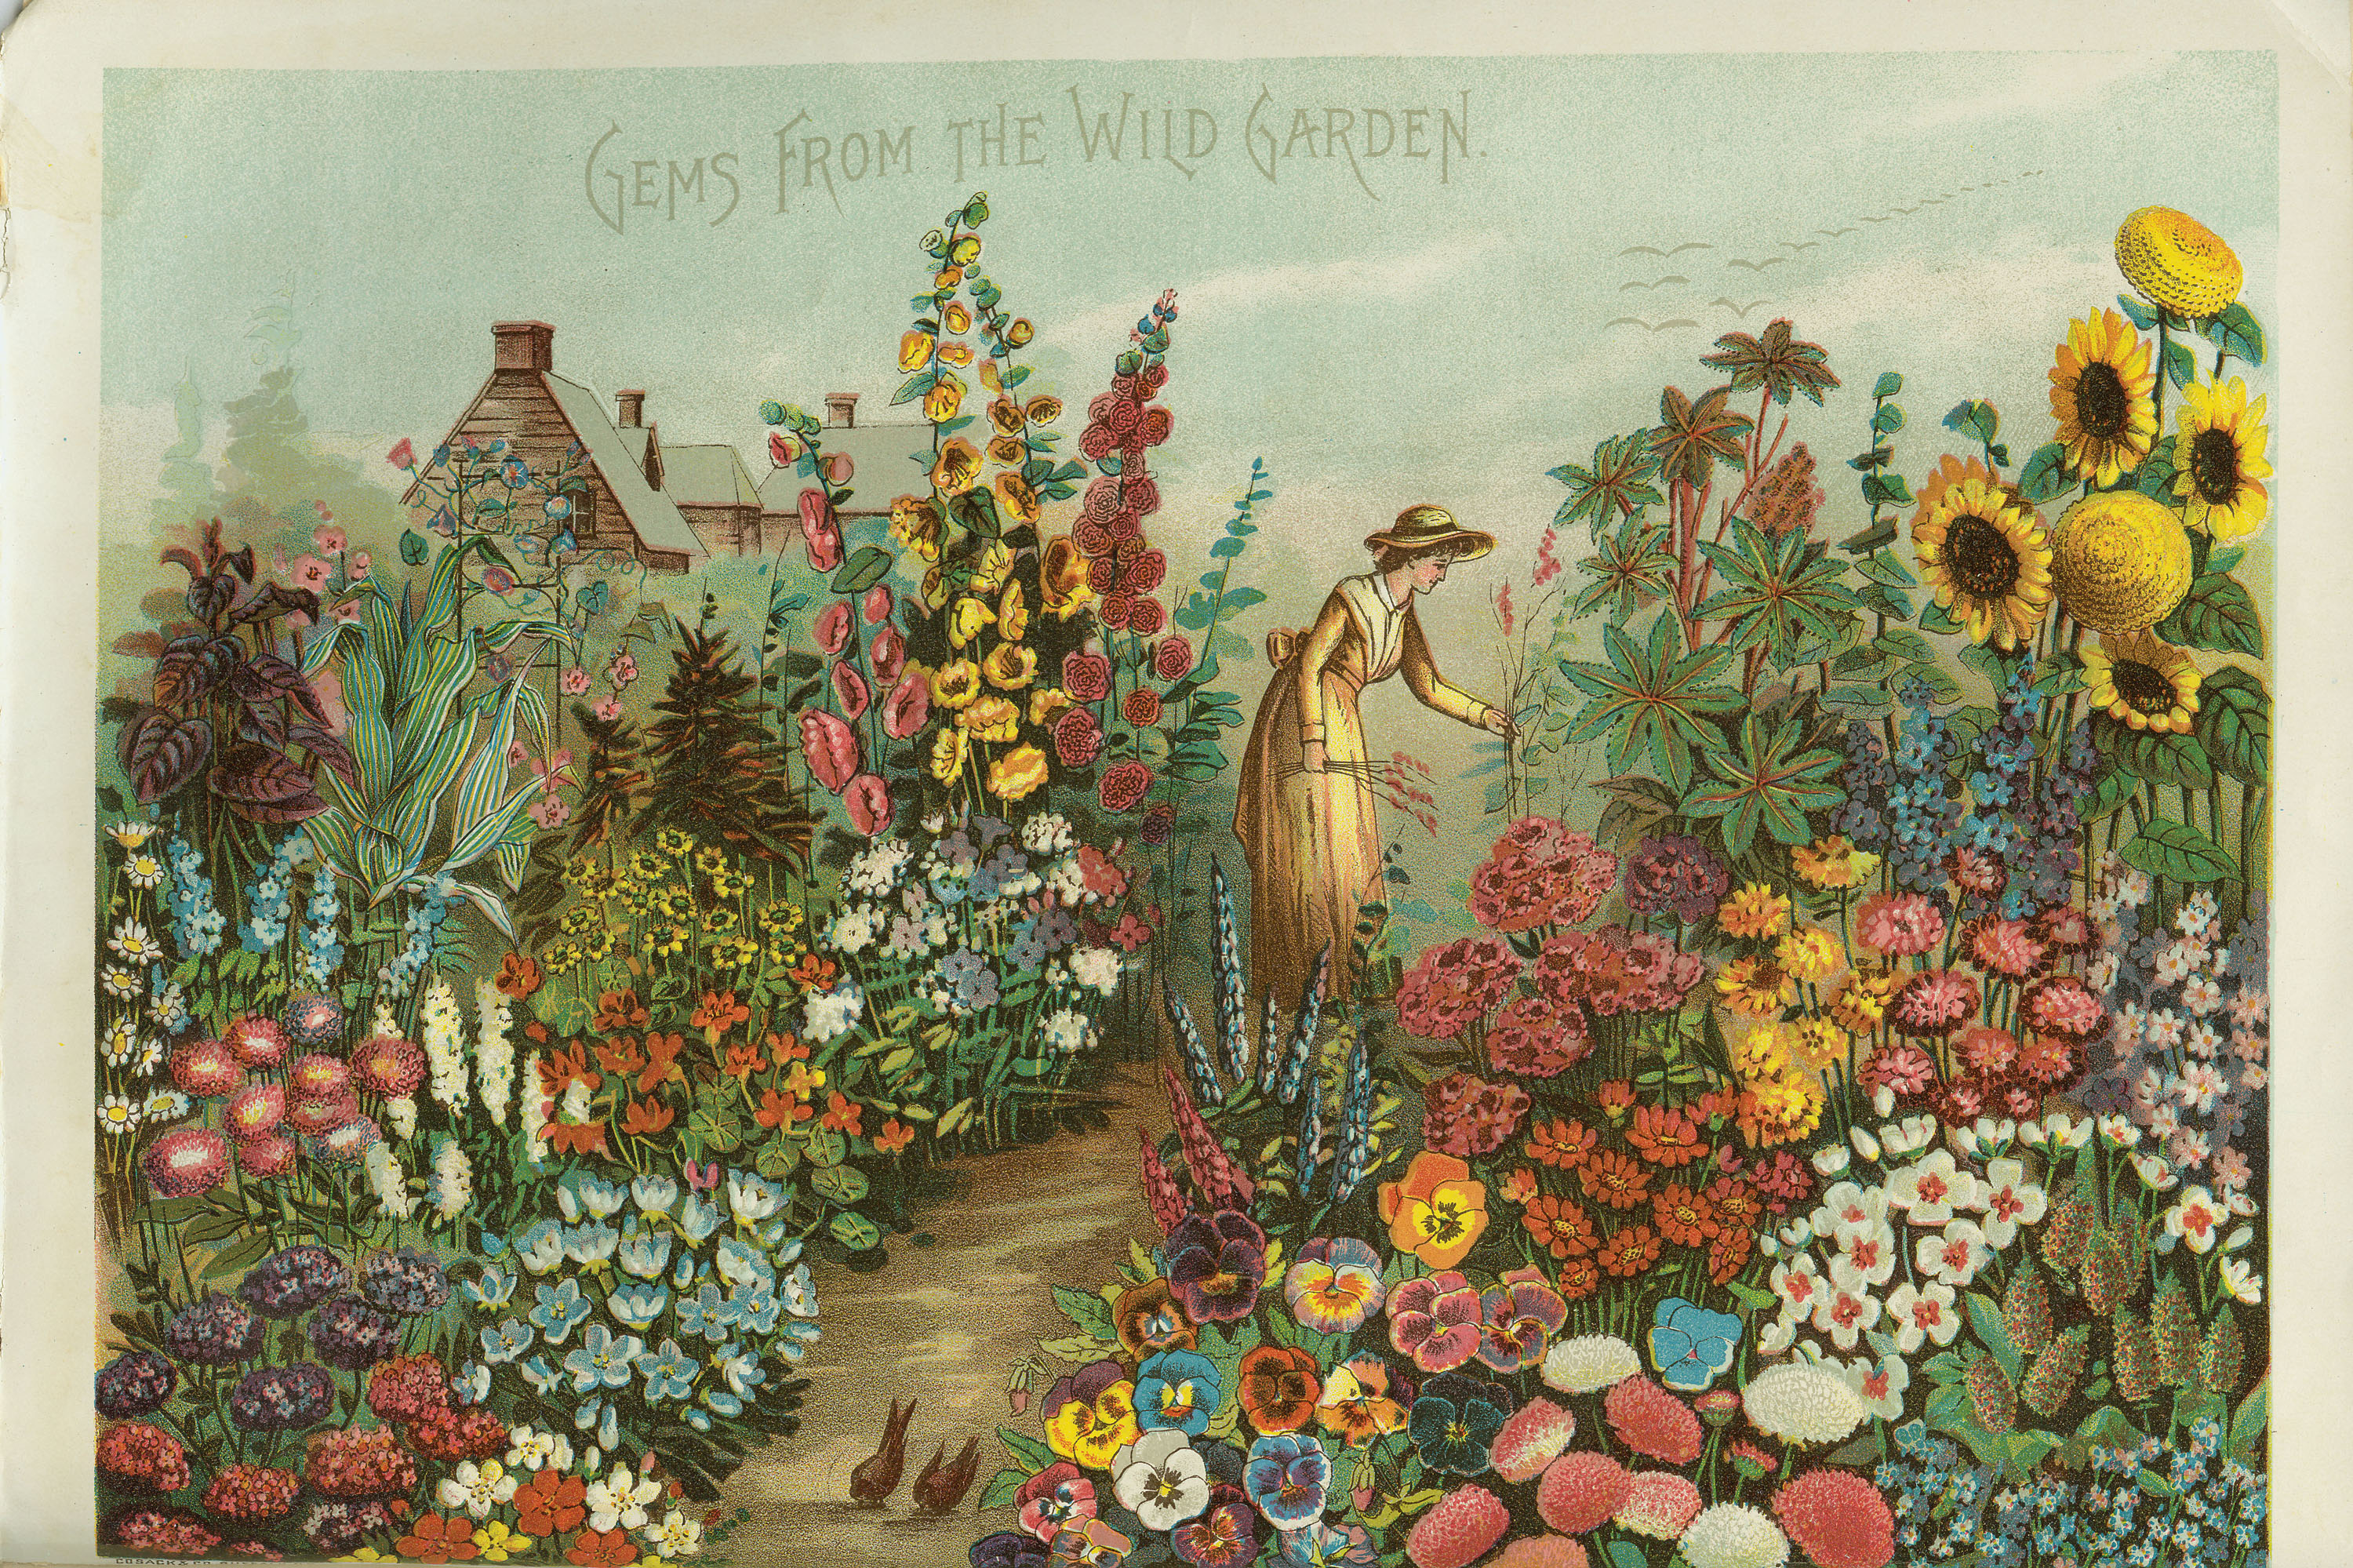 Late Nineteenth Century Arts and Crafts Movement Impacted Gardening ...